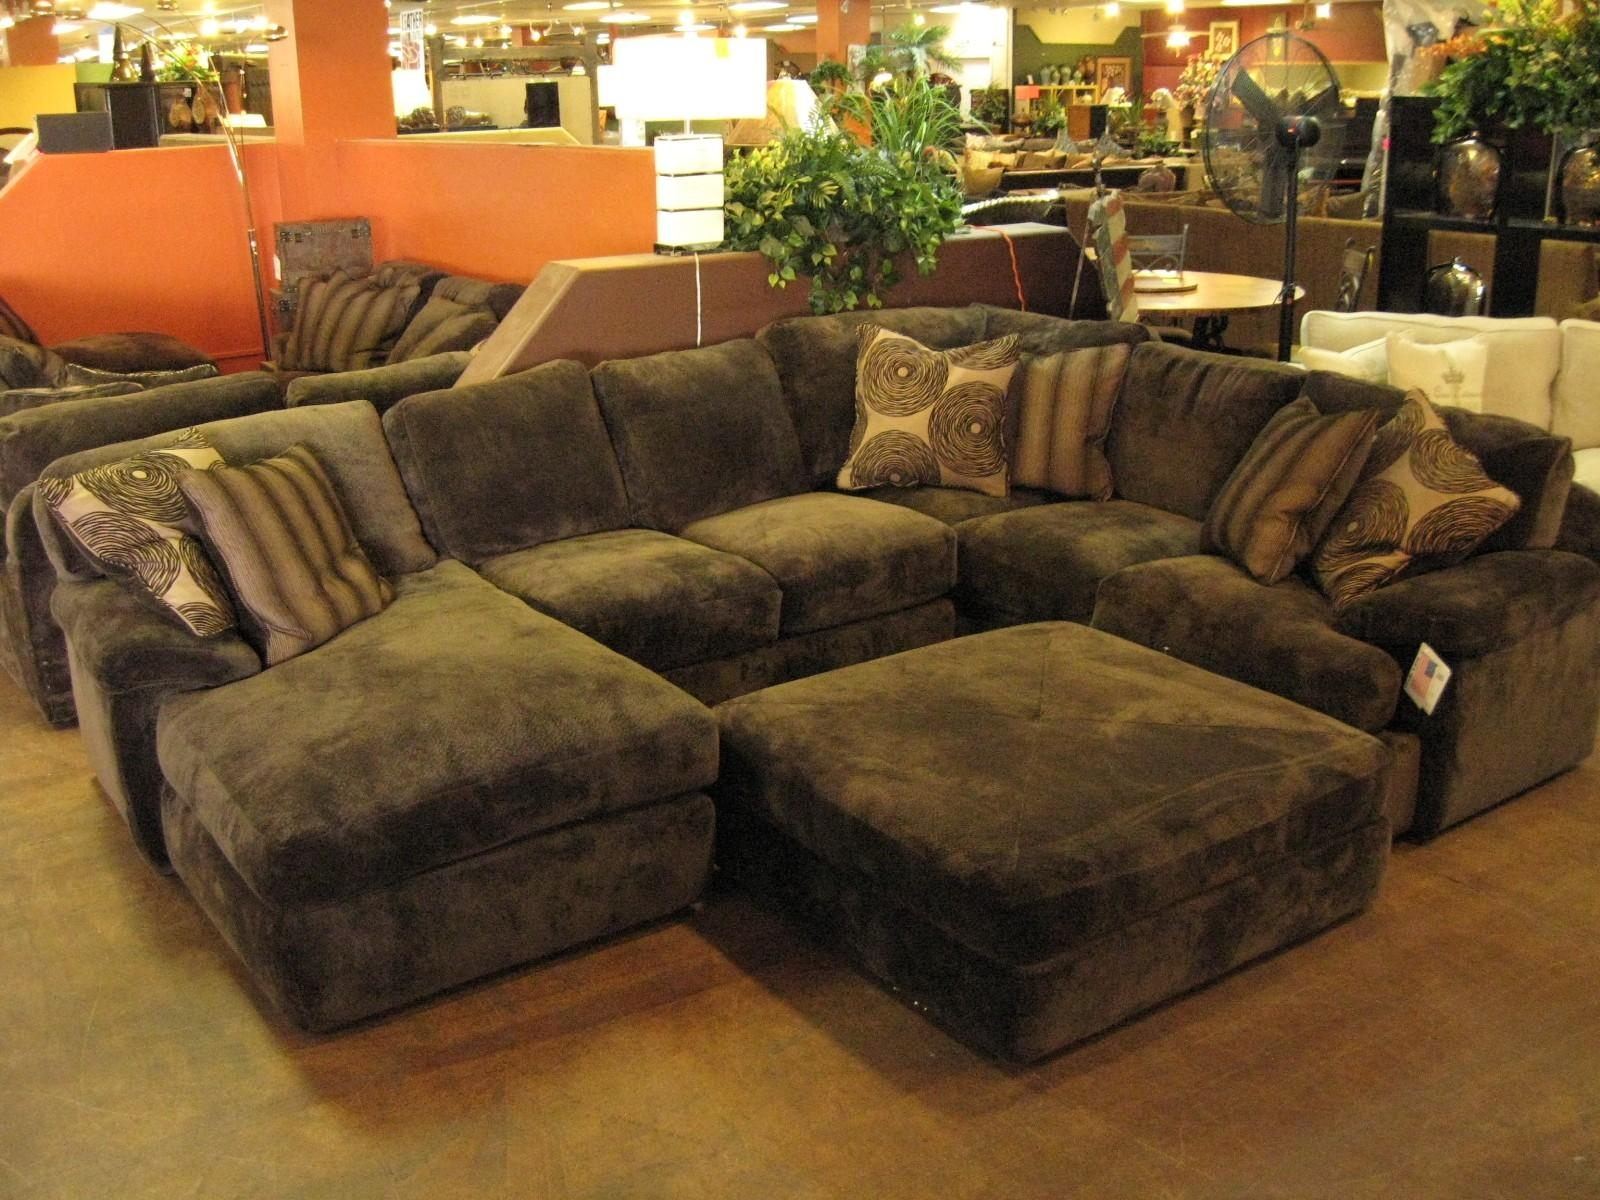 Furniture: Lazy Boy Sectional | Large Sectional Sofas | Amazon Couches Pertaining To Lazyboy Sectional Sofas (Image 3 of 20)